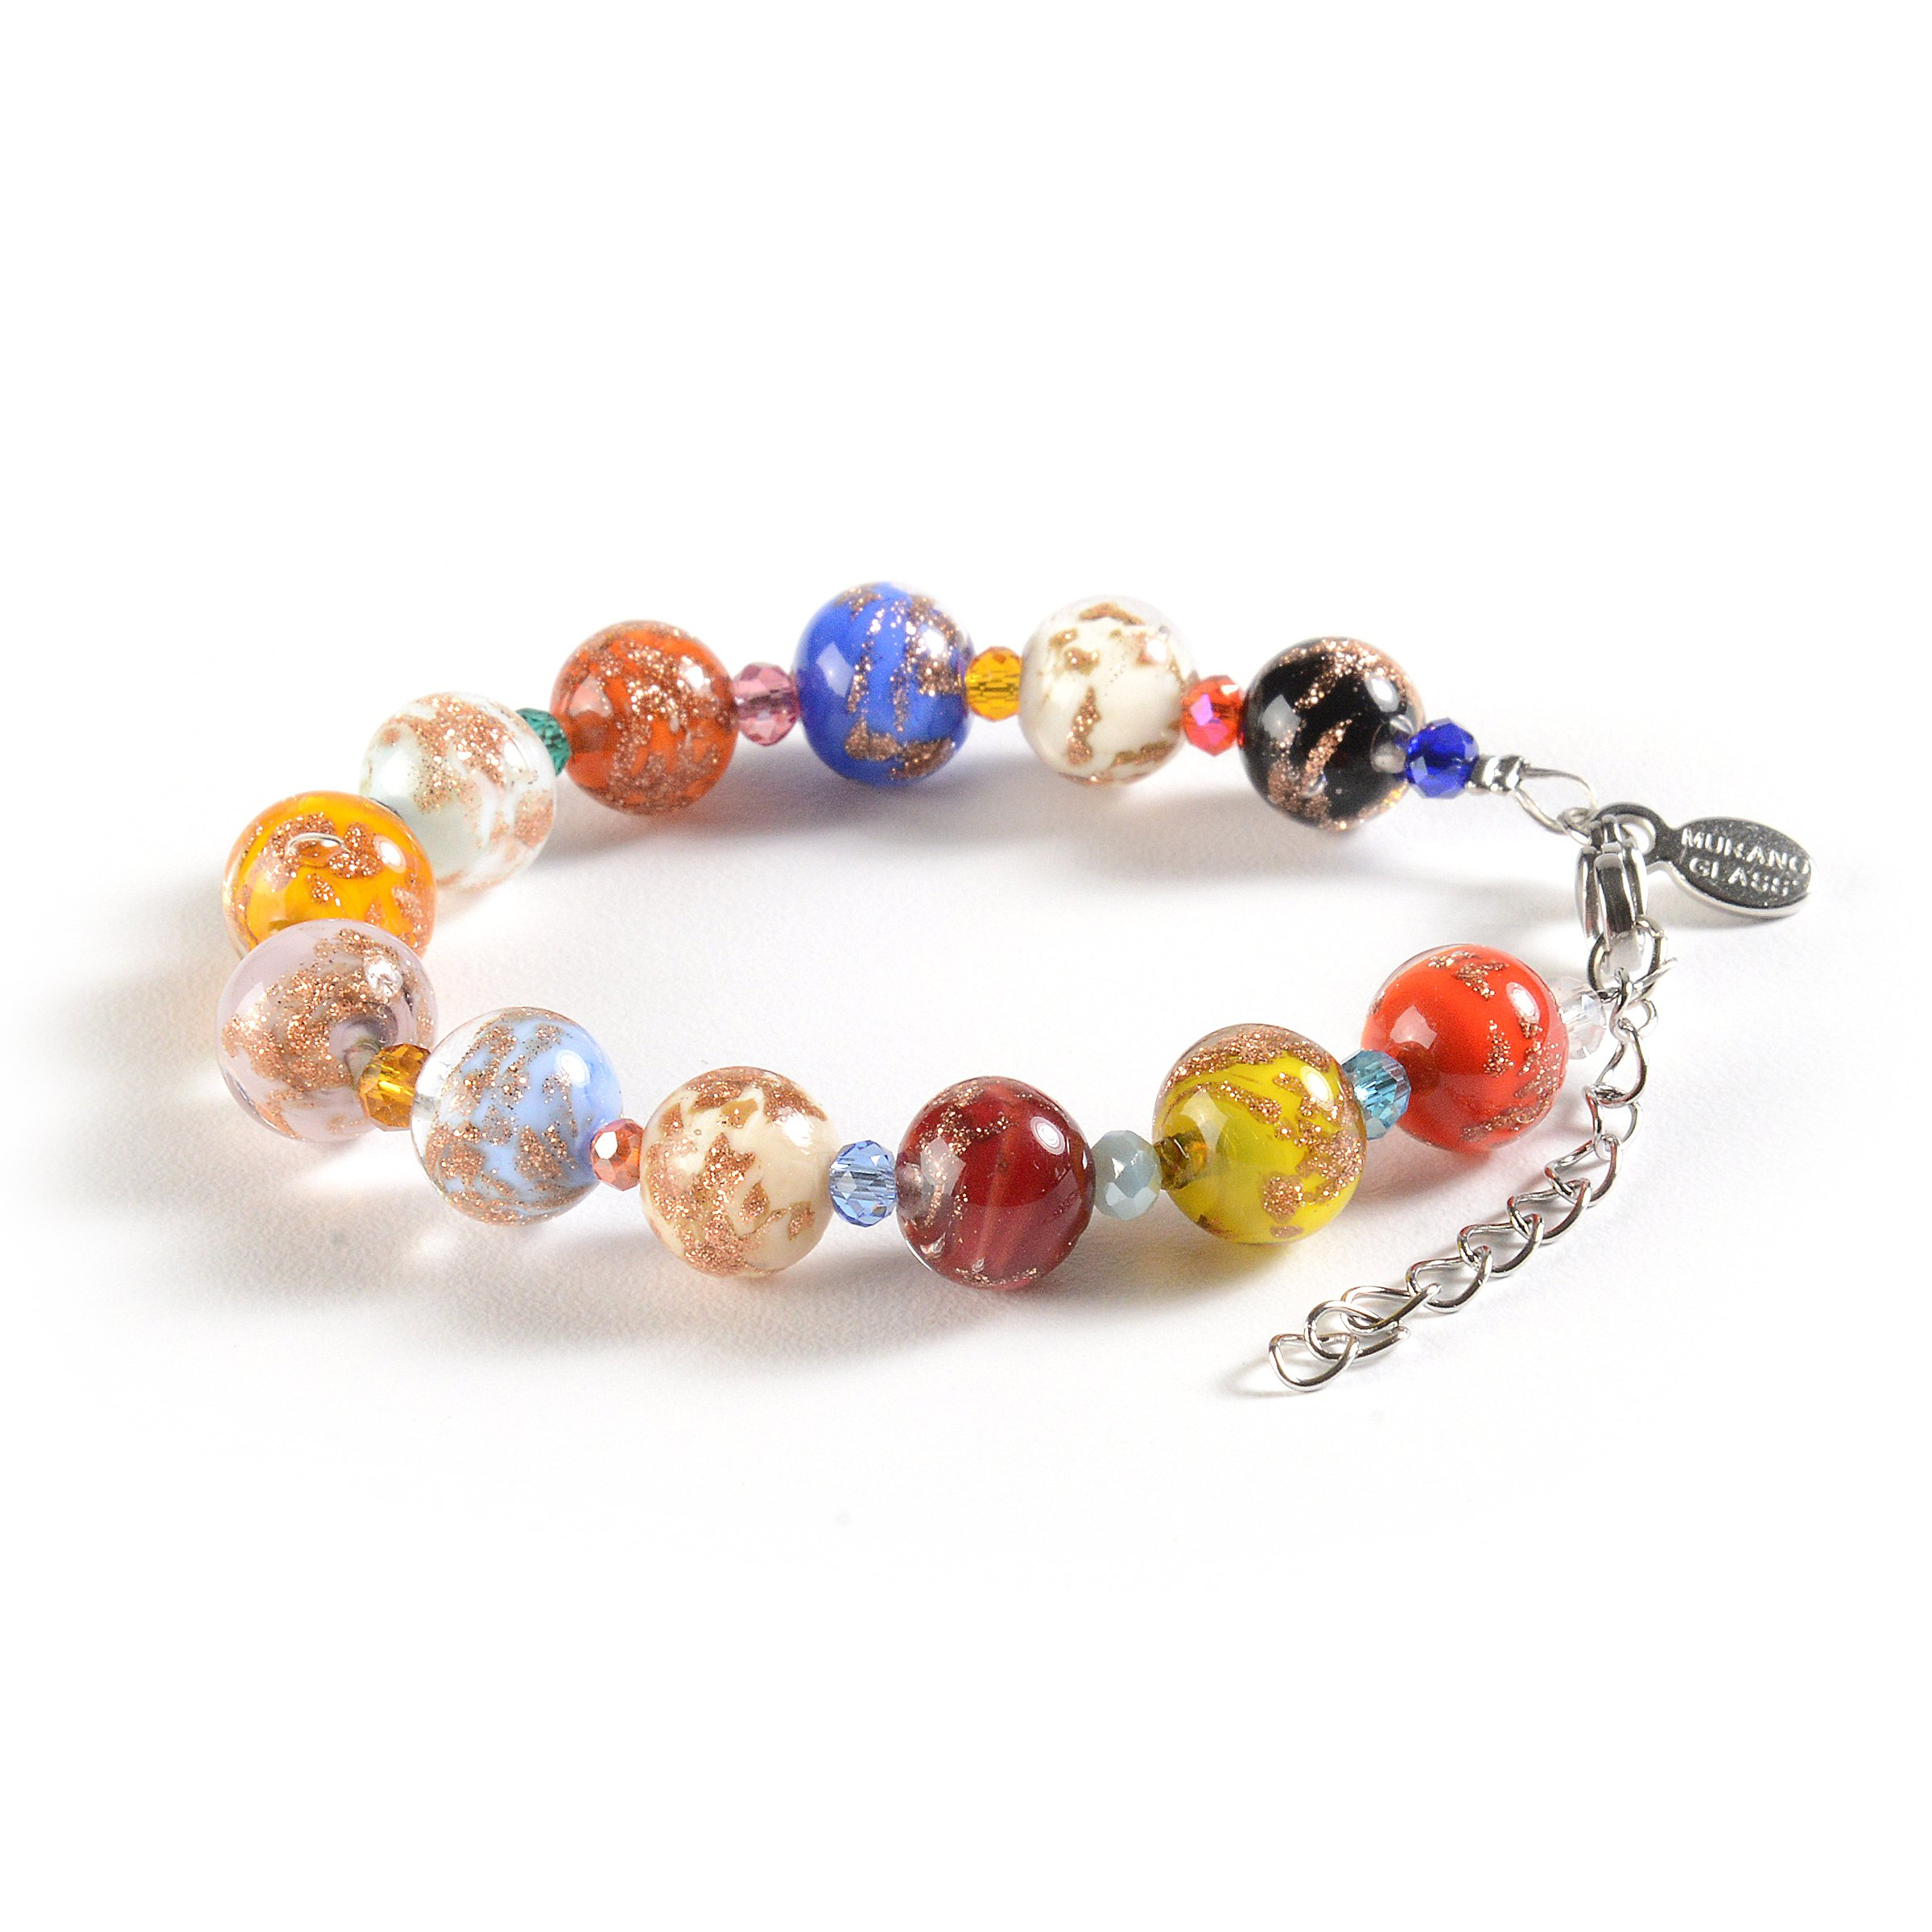 Murano Glass Jewelry, Handmade Vibrant Murano Glass Beads, Hypoallergenic Zamak Clasp, Each Murano Charm Bead is Unique, Colorful, and Exquisite - Murano Glass Bracelet for Women, Imported